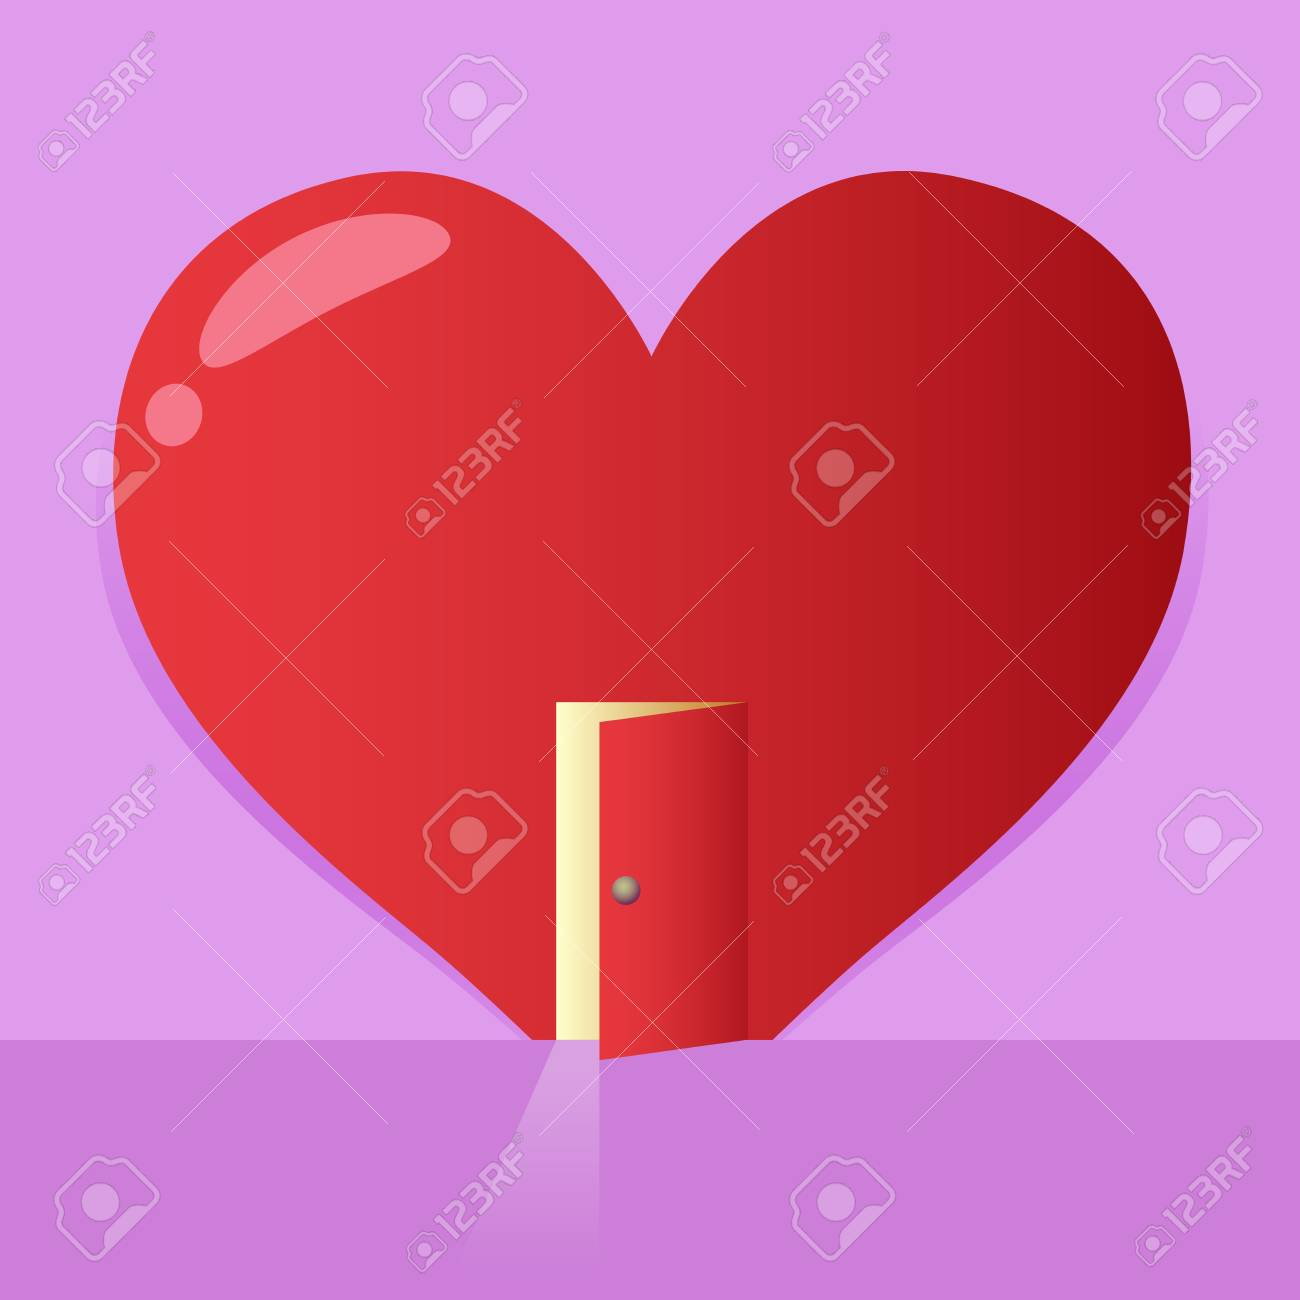 Vector stock of a big heart symbol with an open door valentines vector stock of a big heart symbol with an open door valentines background stock vector buycottarizona Image collections